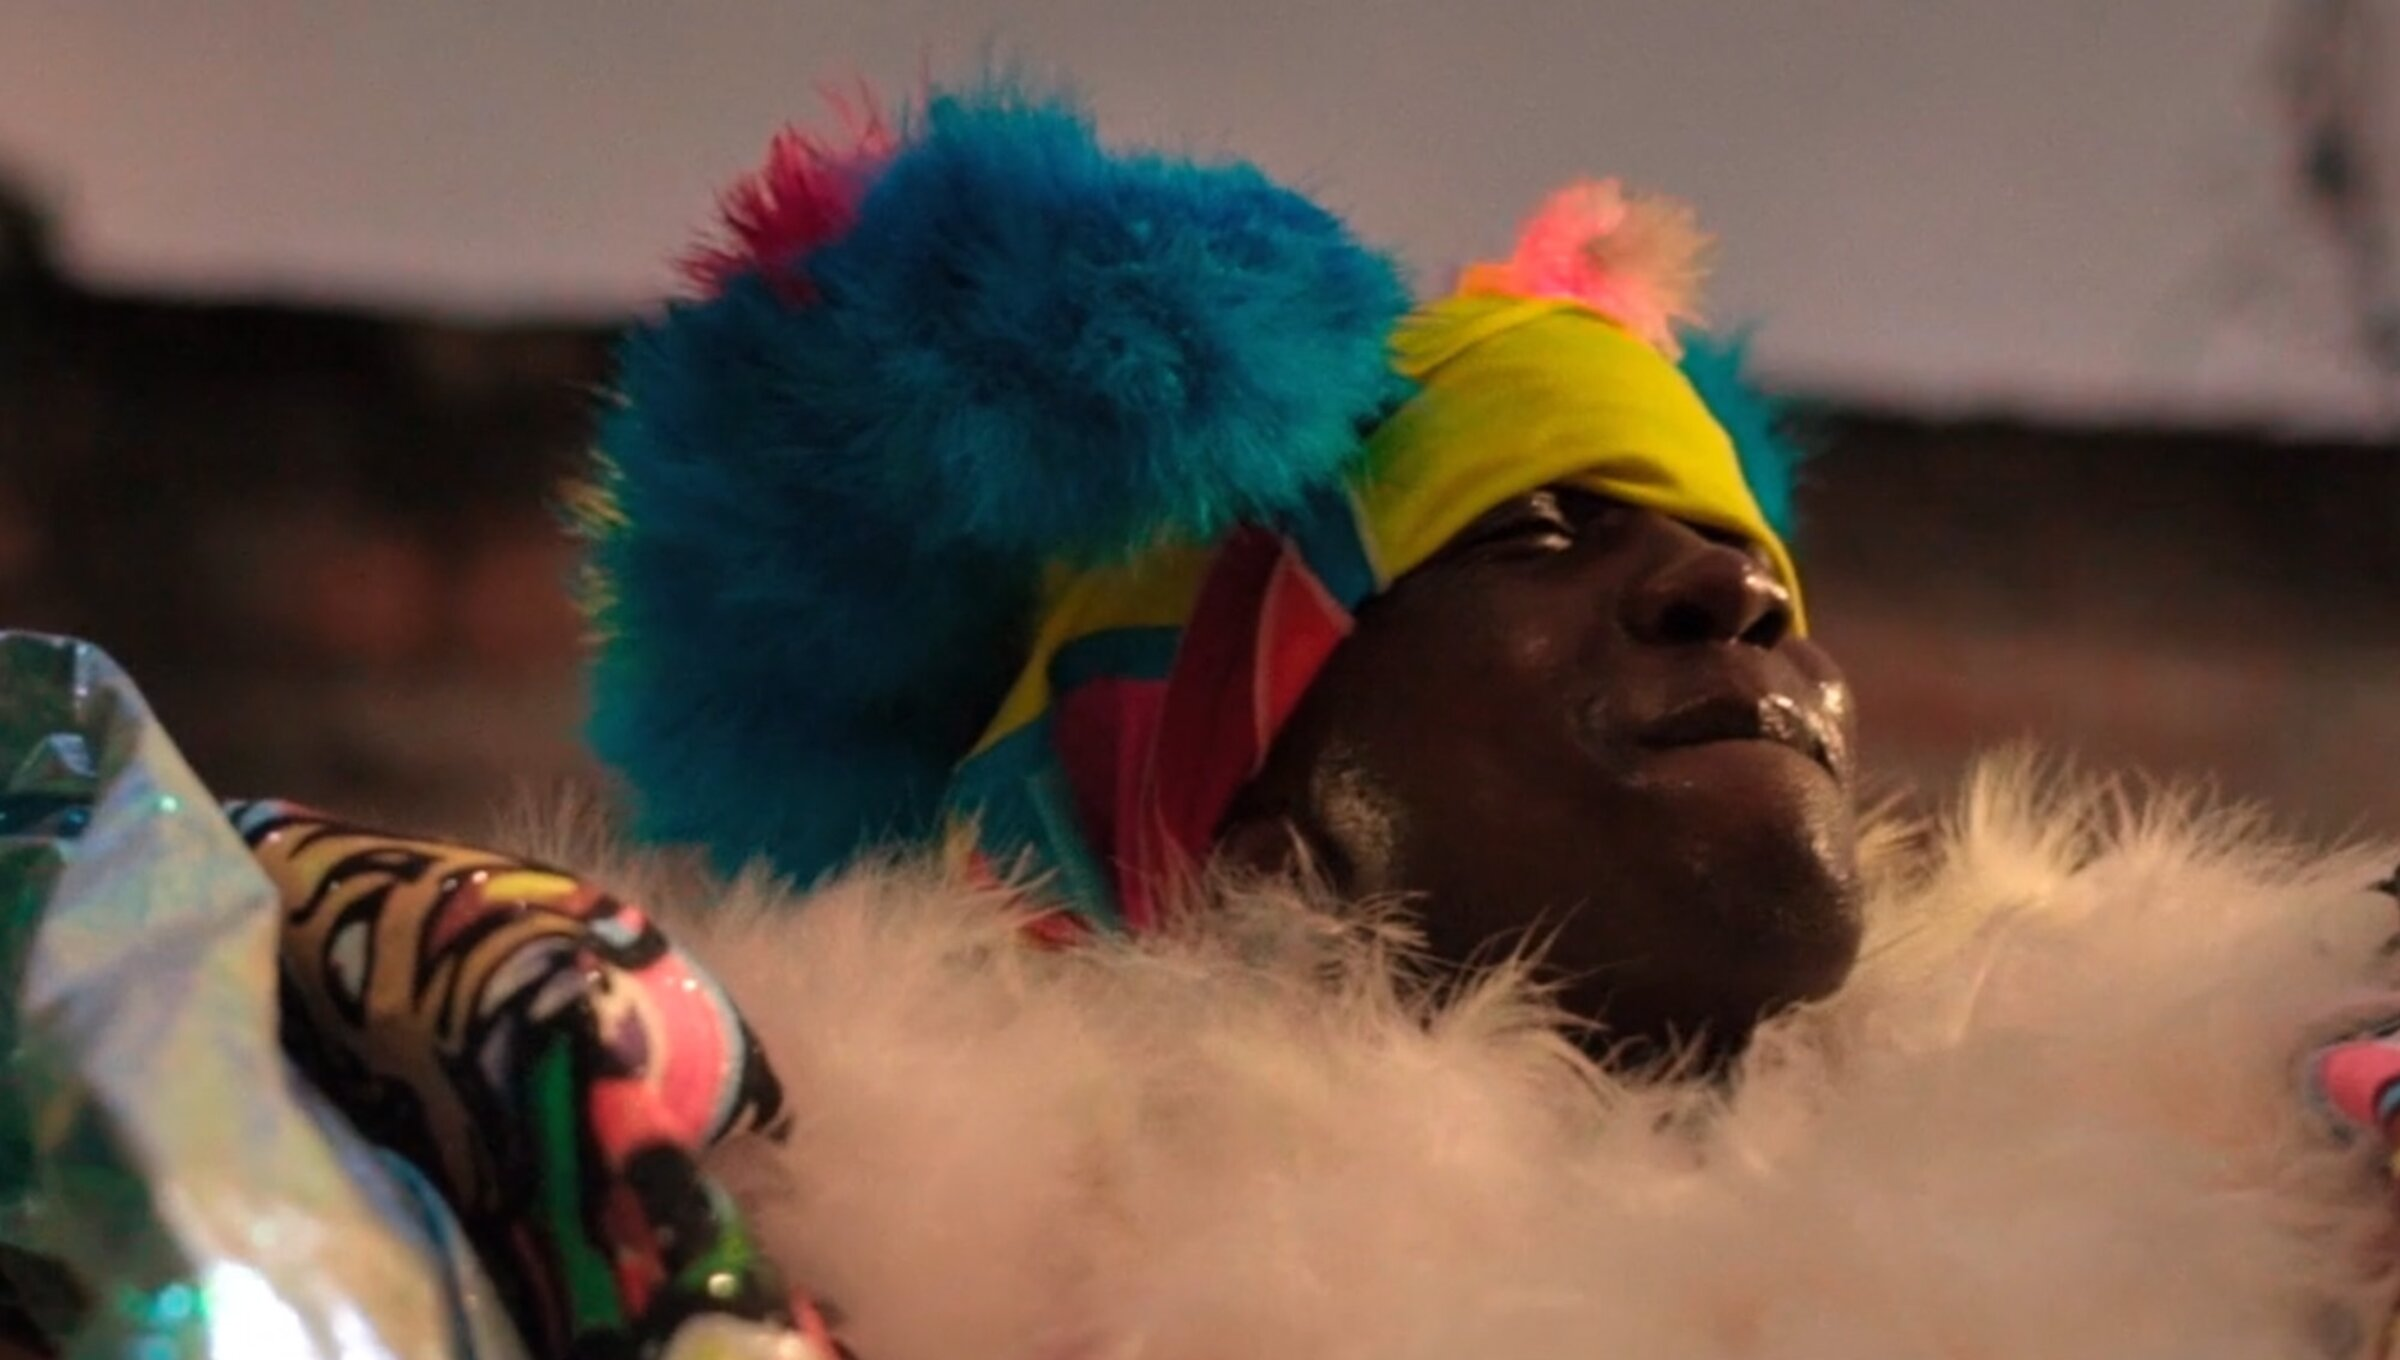 Behold the fearsome beauty of Rio's other carnival, on the outskirts of town | Psyche